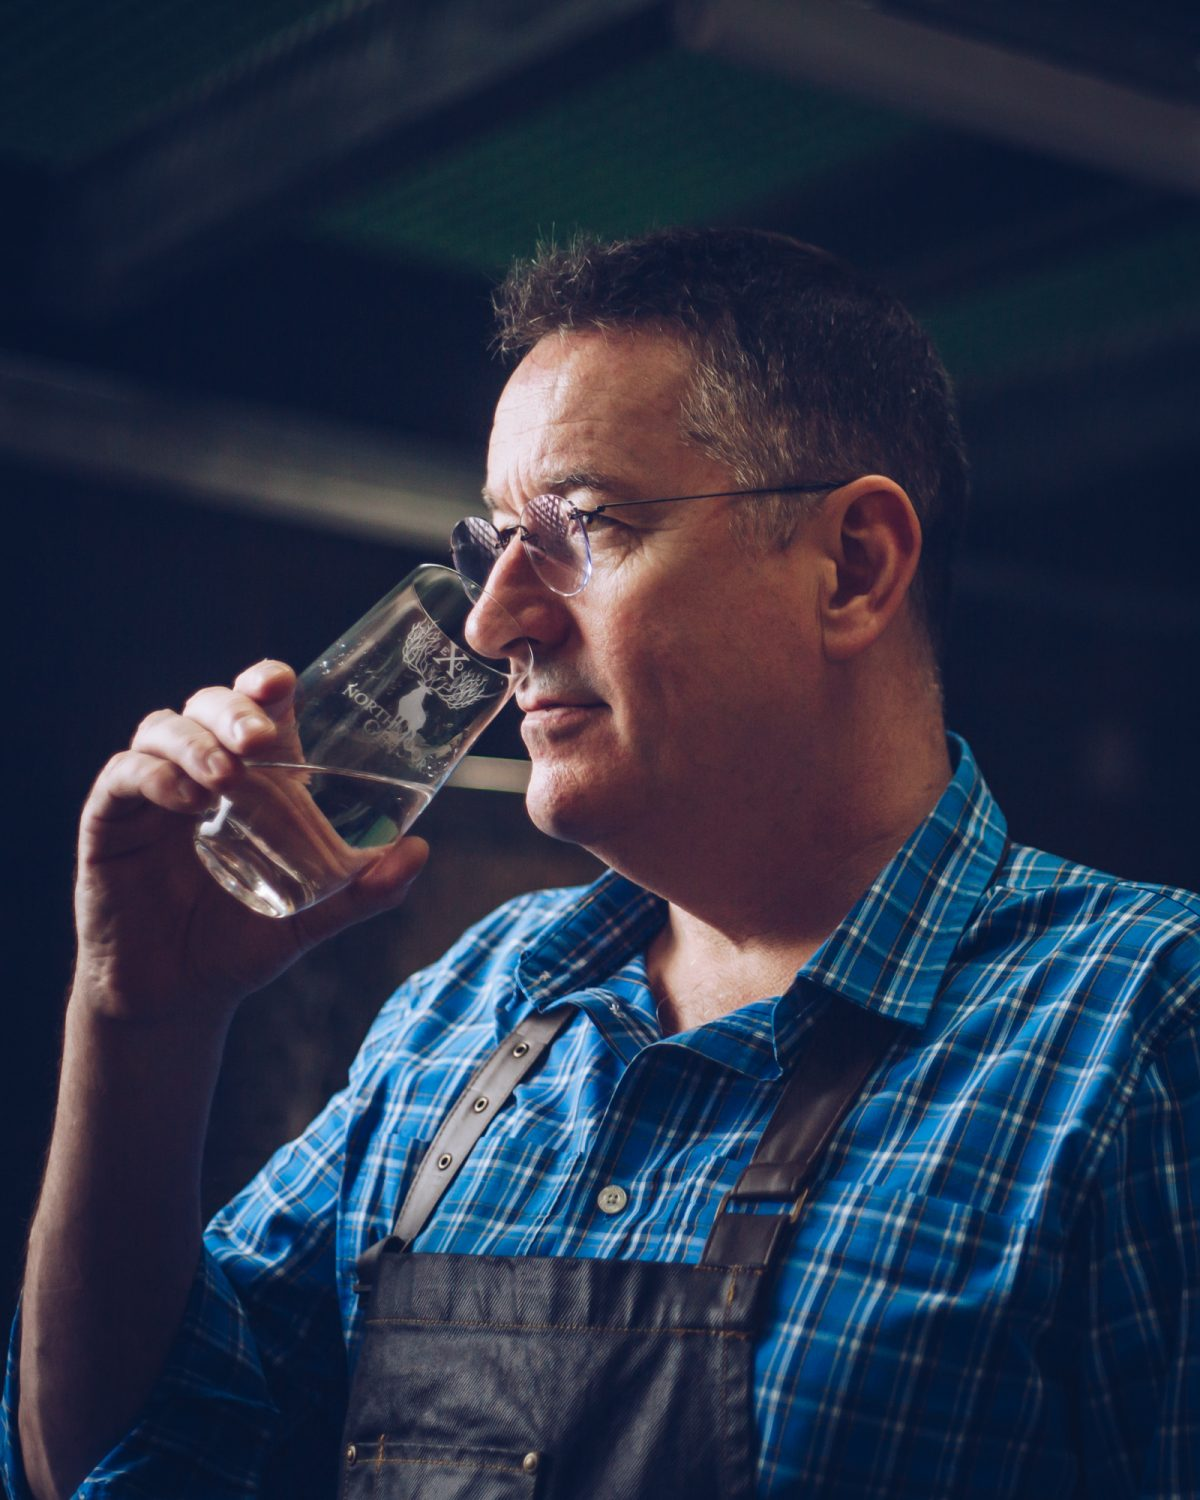 John working in the Distillery